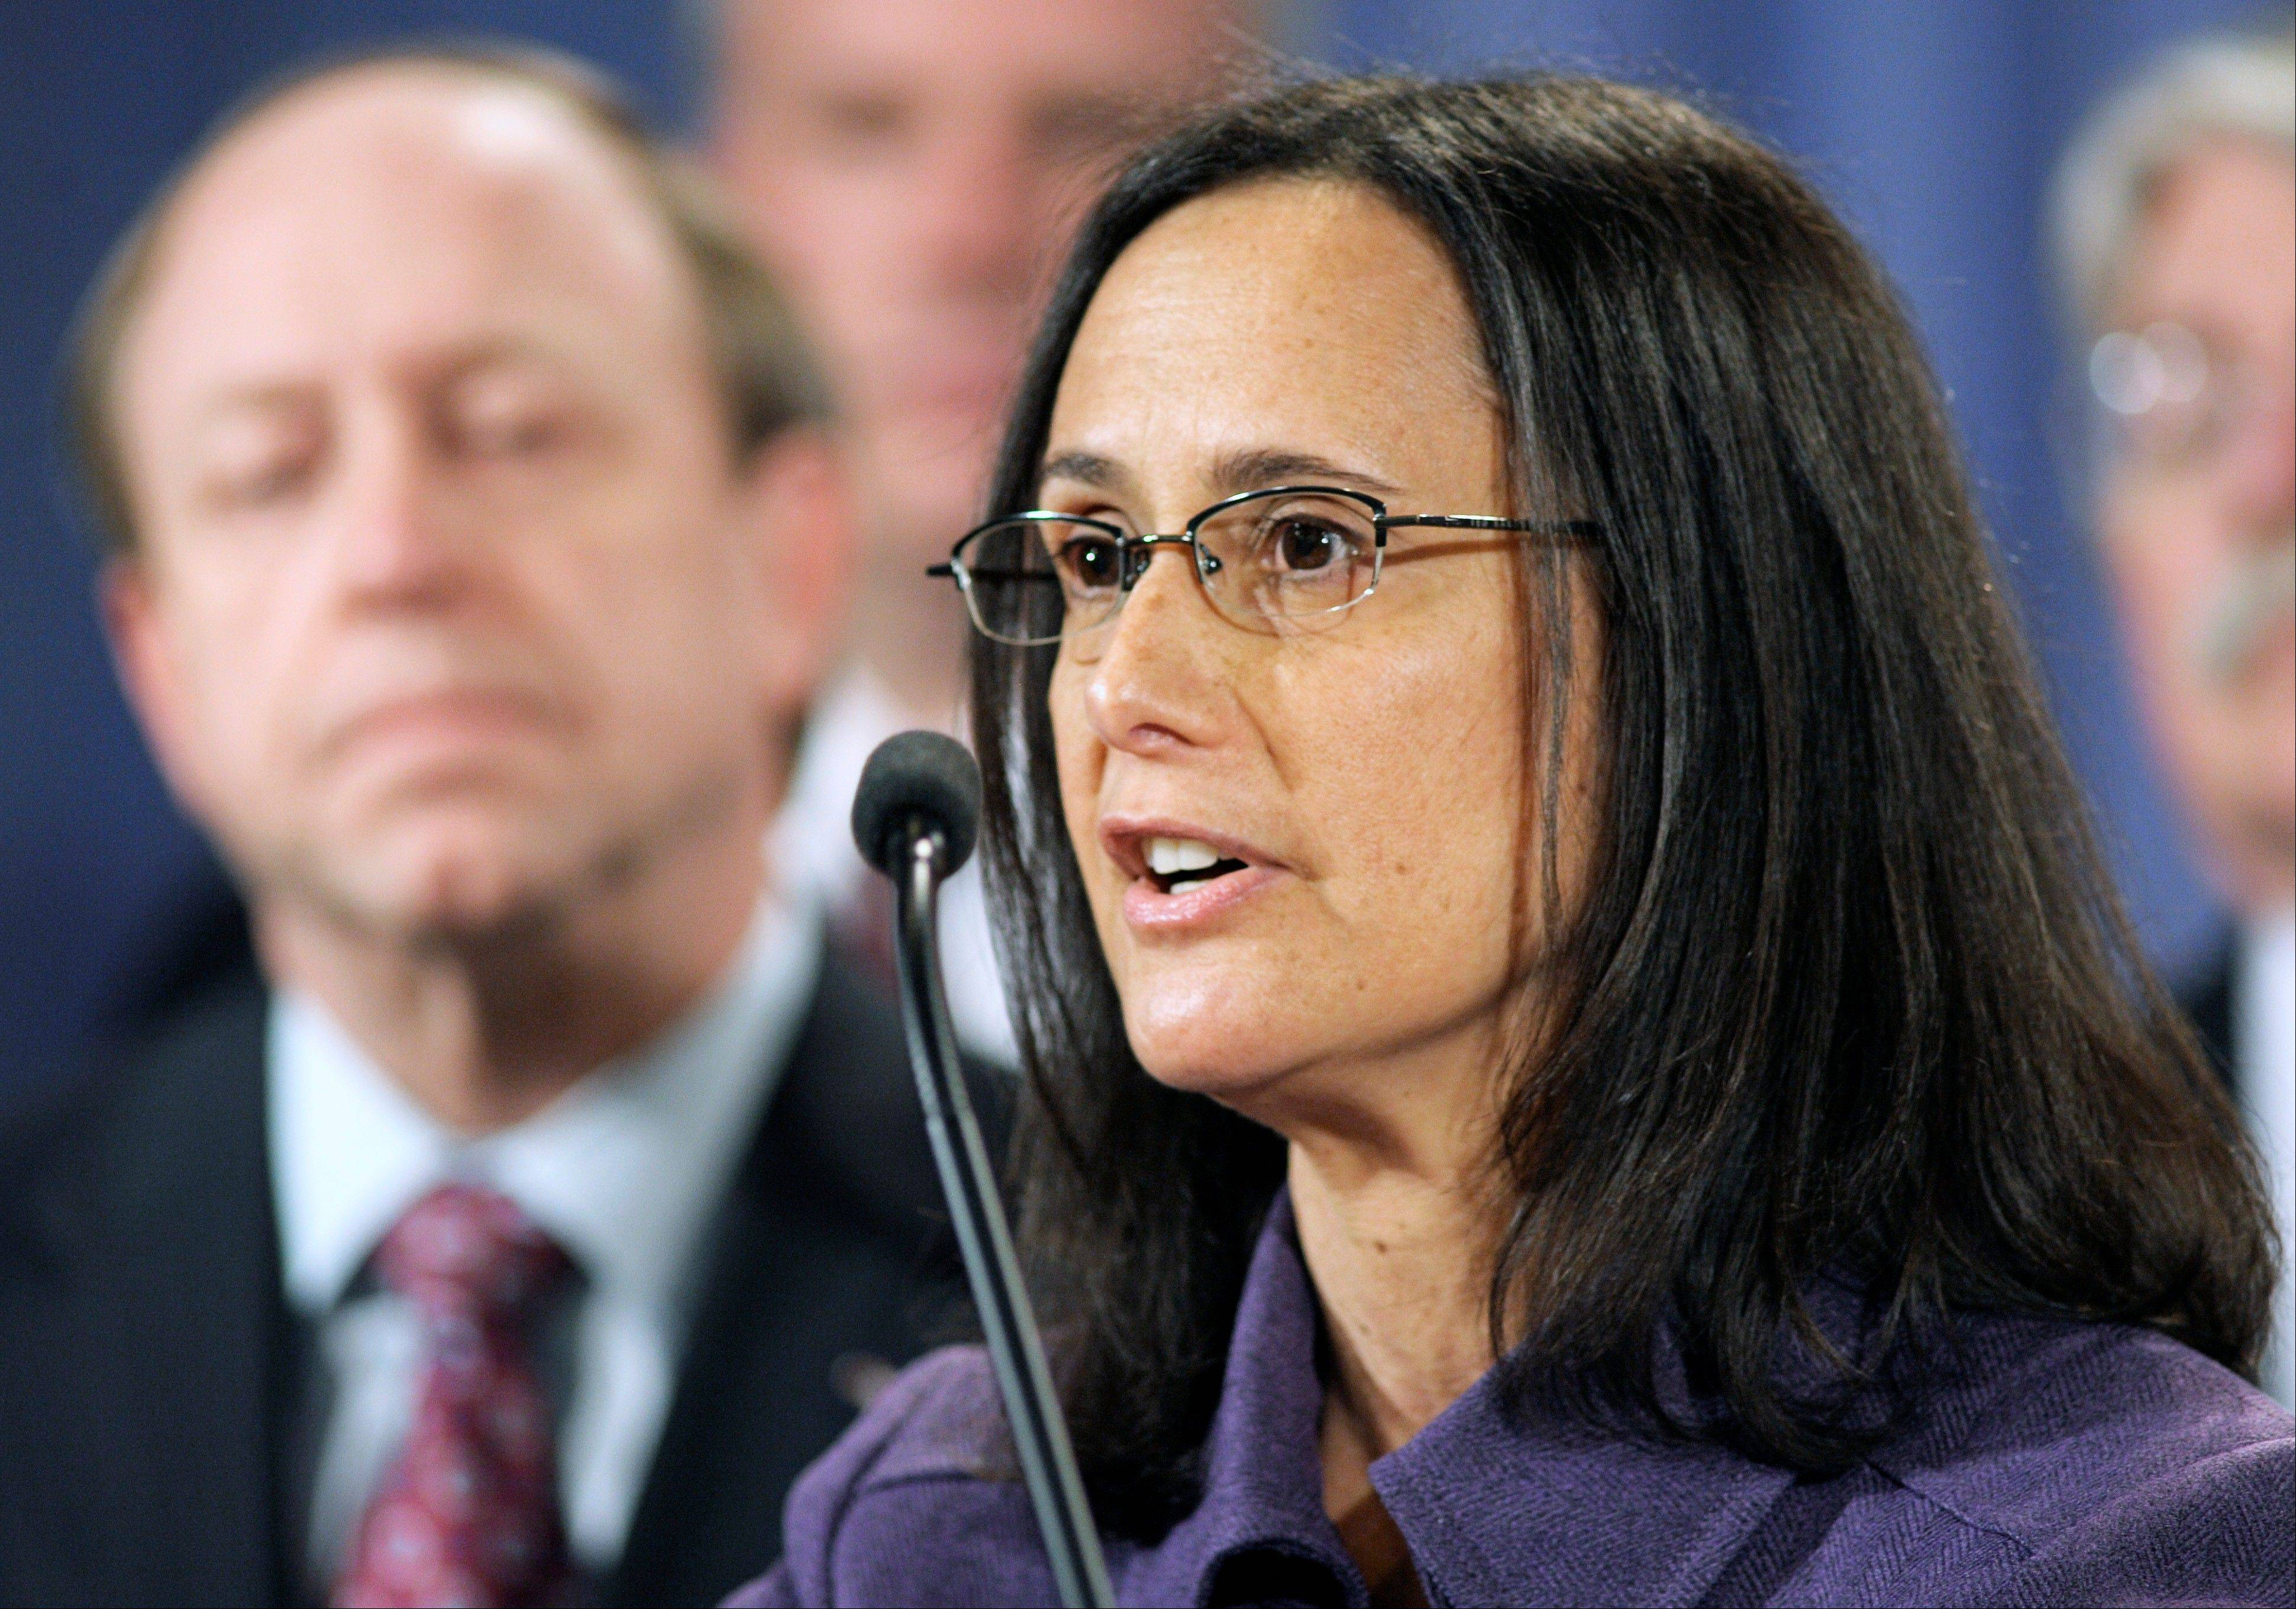 Illinois Attorney General Lisa Madigan said Monday she will not run for governor.